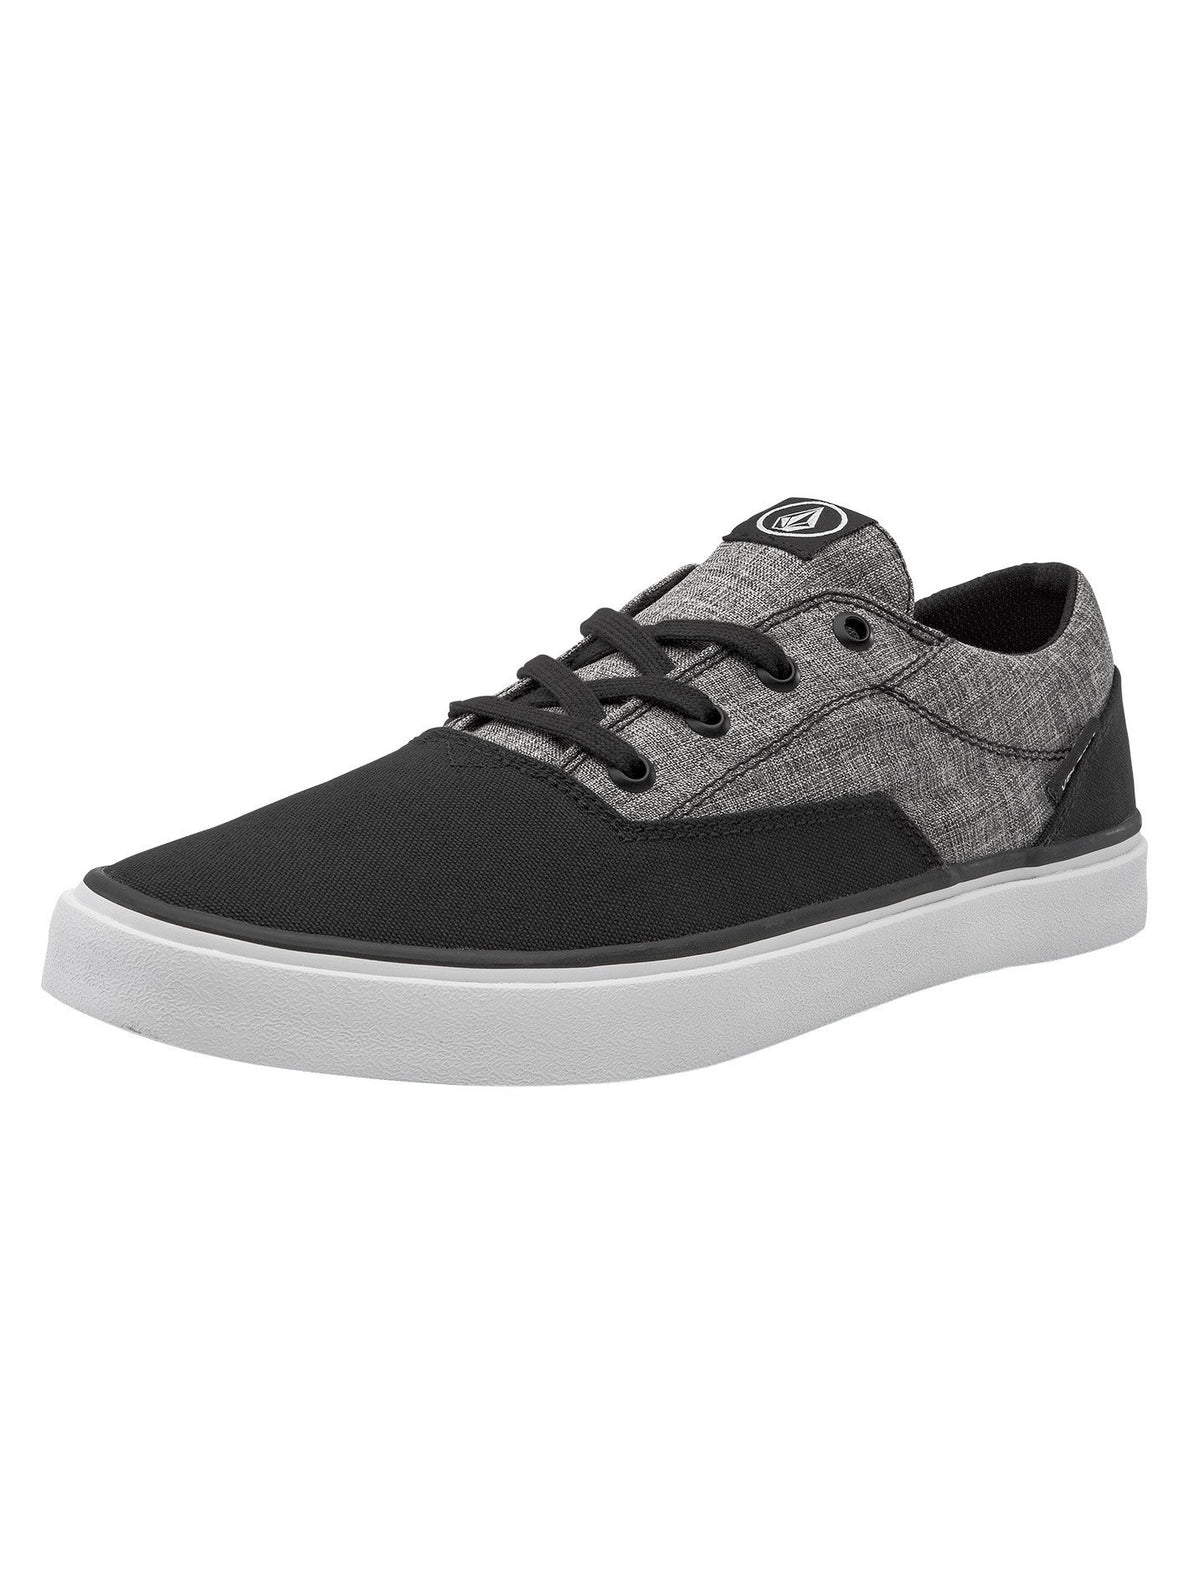 Draw Lo Shoe - Heather Black (V4031710_HBK) [5]